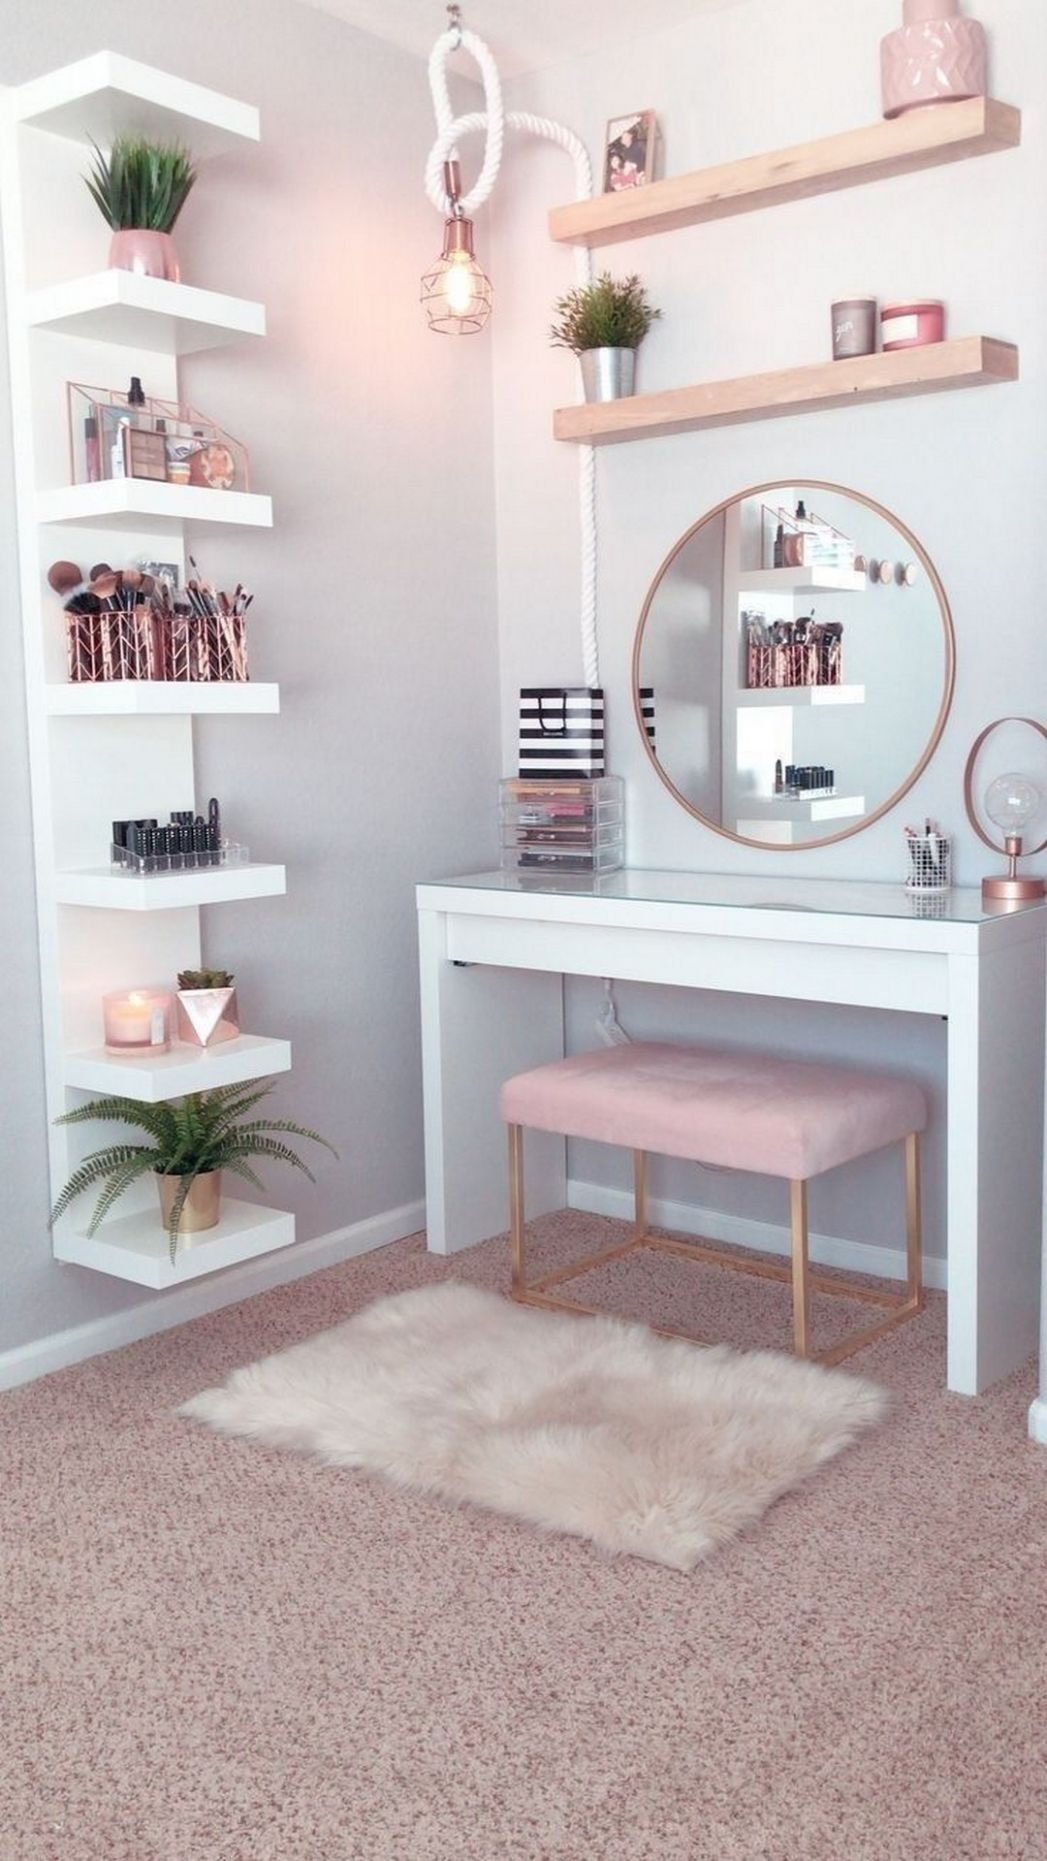 10 Makeup Room Ideas To Brighten Your Morning Routine - House & Living